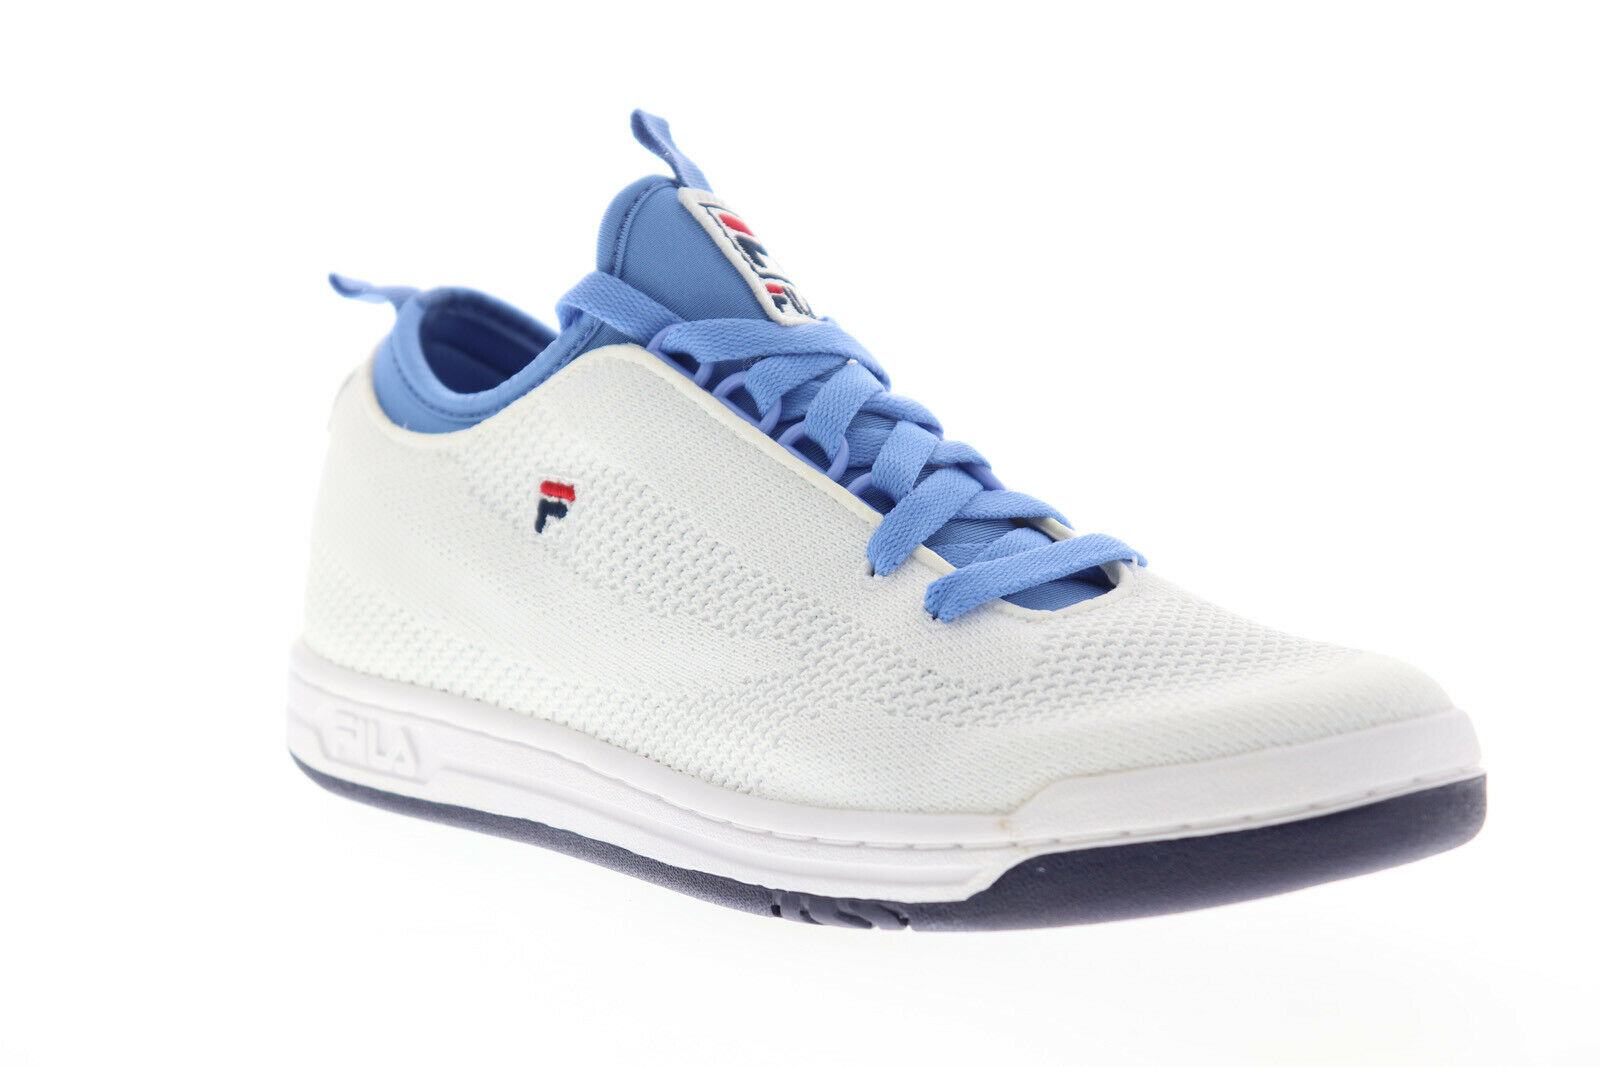 Fila Original Tennis 2.0 Knit Mens White Canvas Casual Low Top Sneakers Shoes